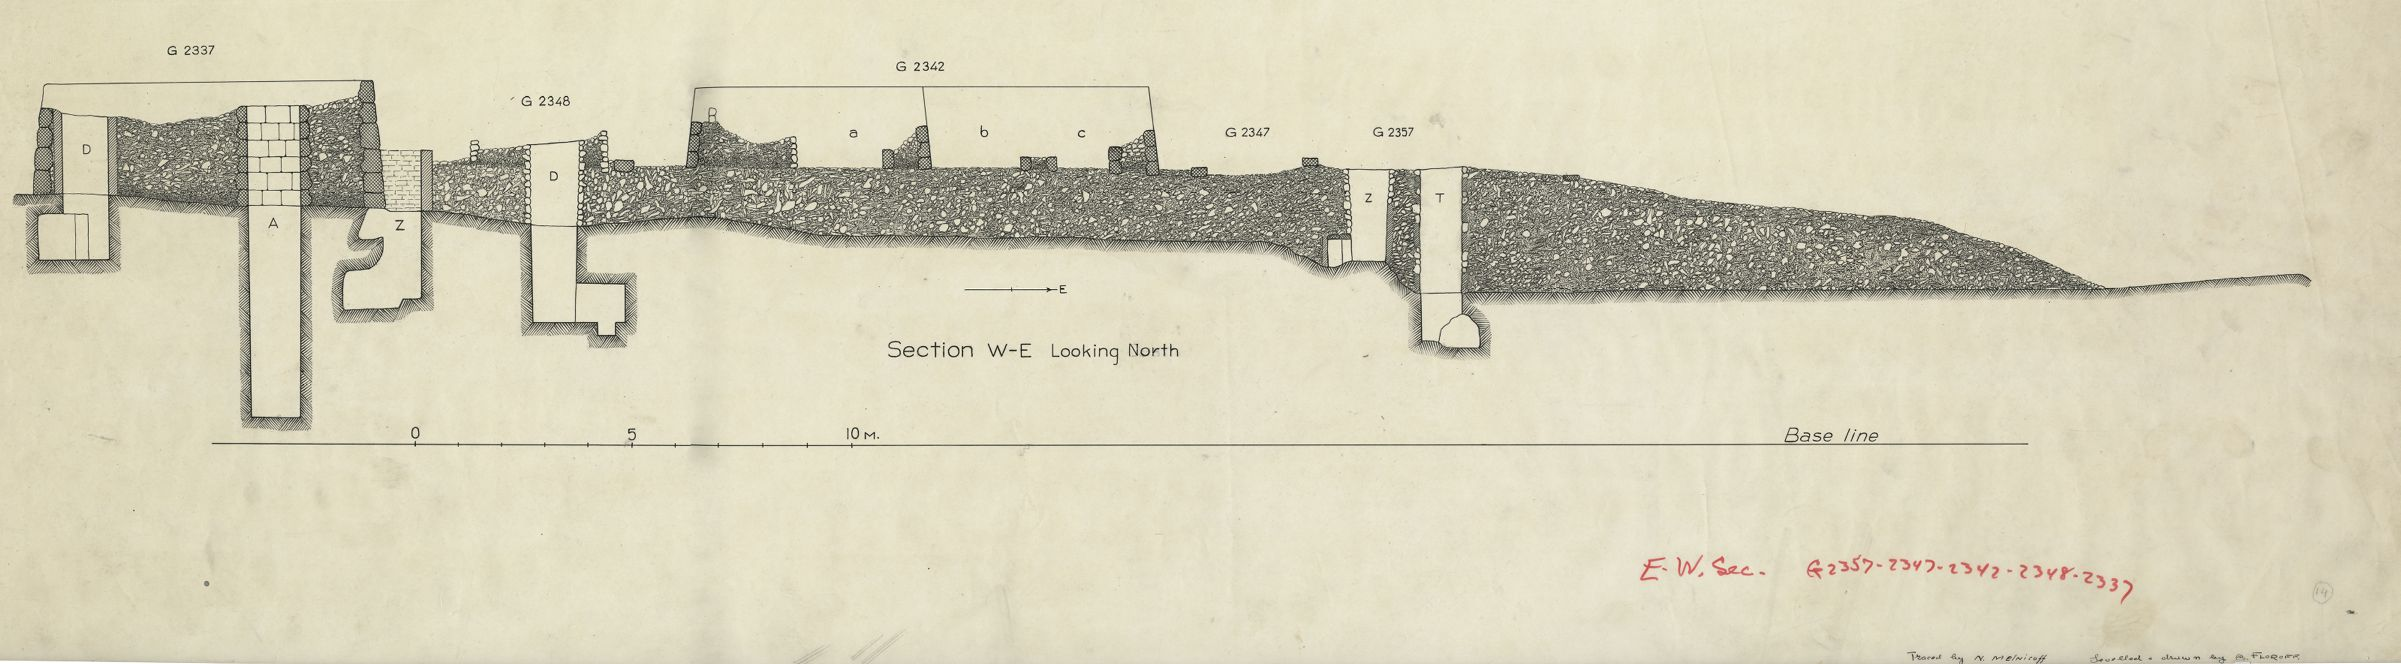 Maps and plans: Section of G 2337, G 5510, G 5520, G 5561, G 5562